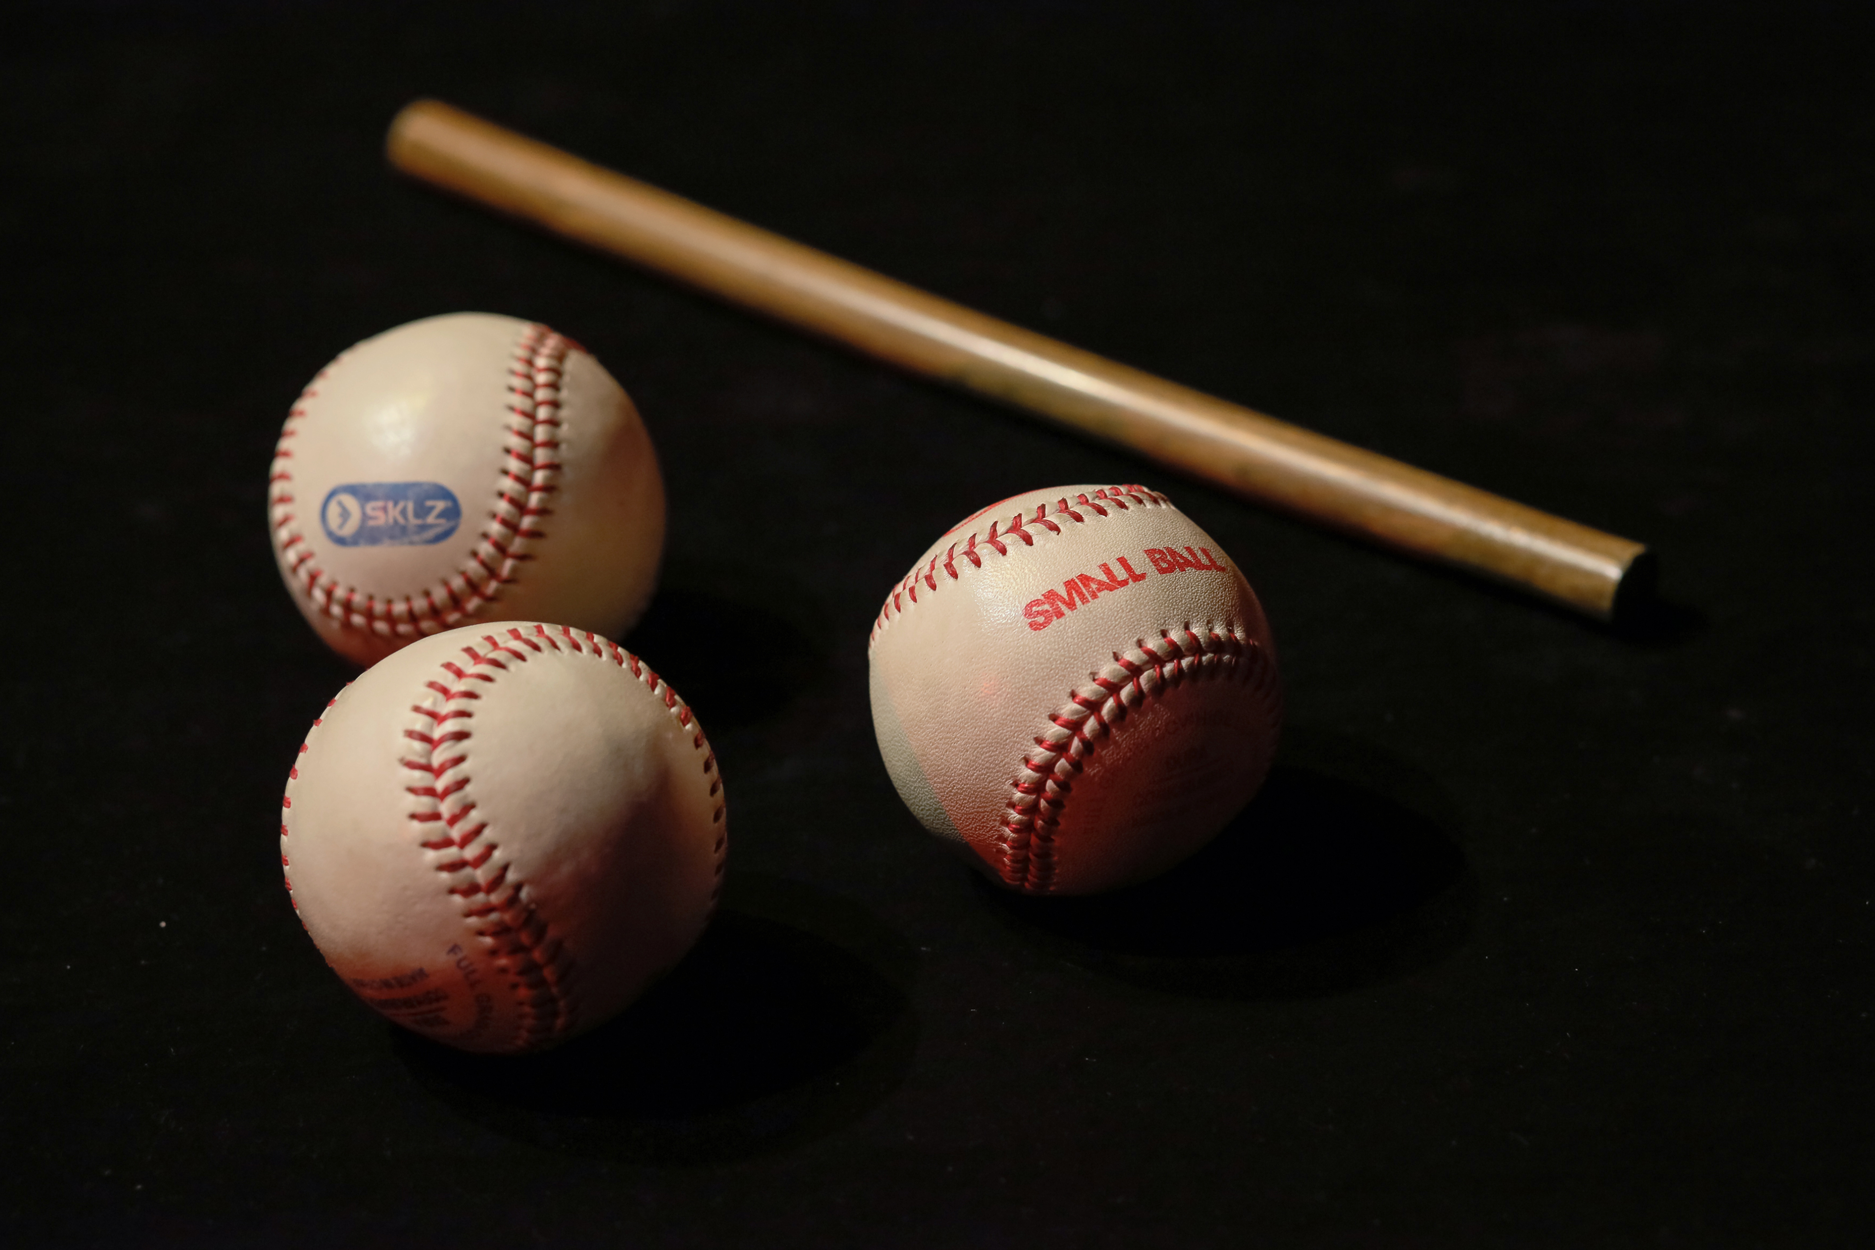 Cups and (base) balls, a classic magical illusion at the Red Spade Theater